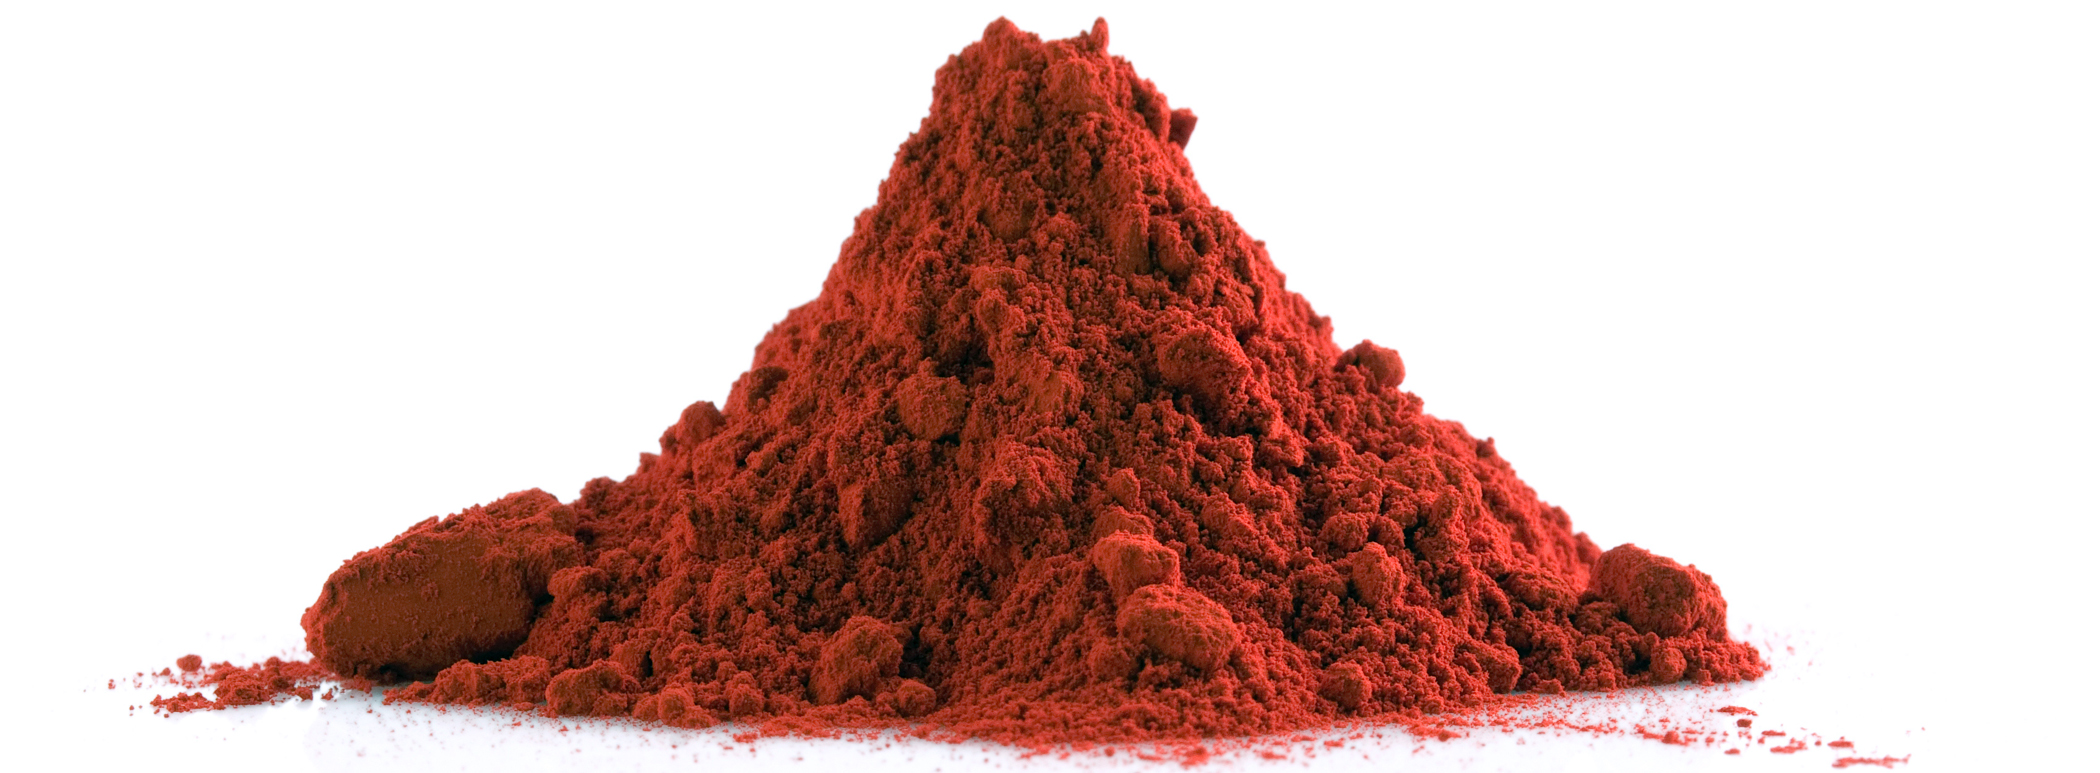 https://cleangoal.com/wp-content/uploads/2017/12/astaxanthin_powder.jpg